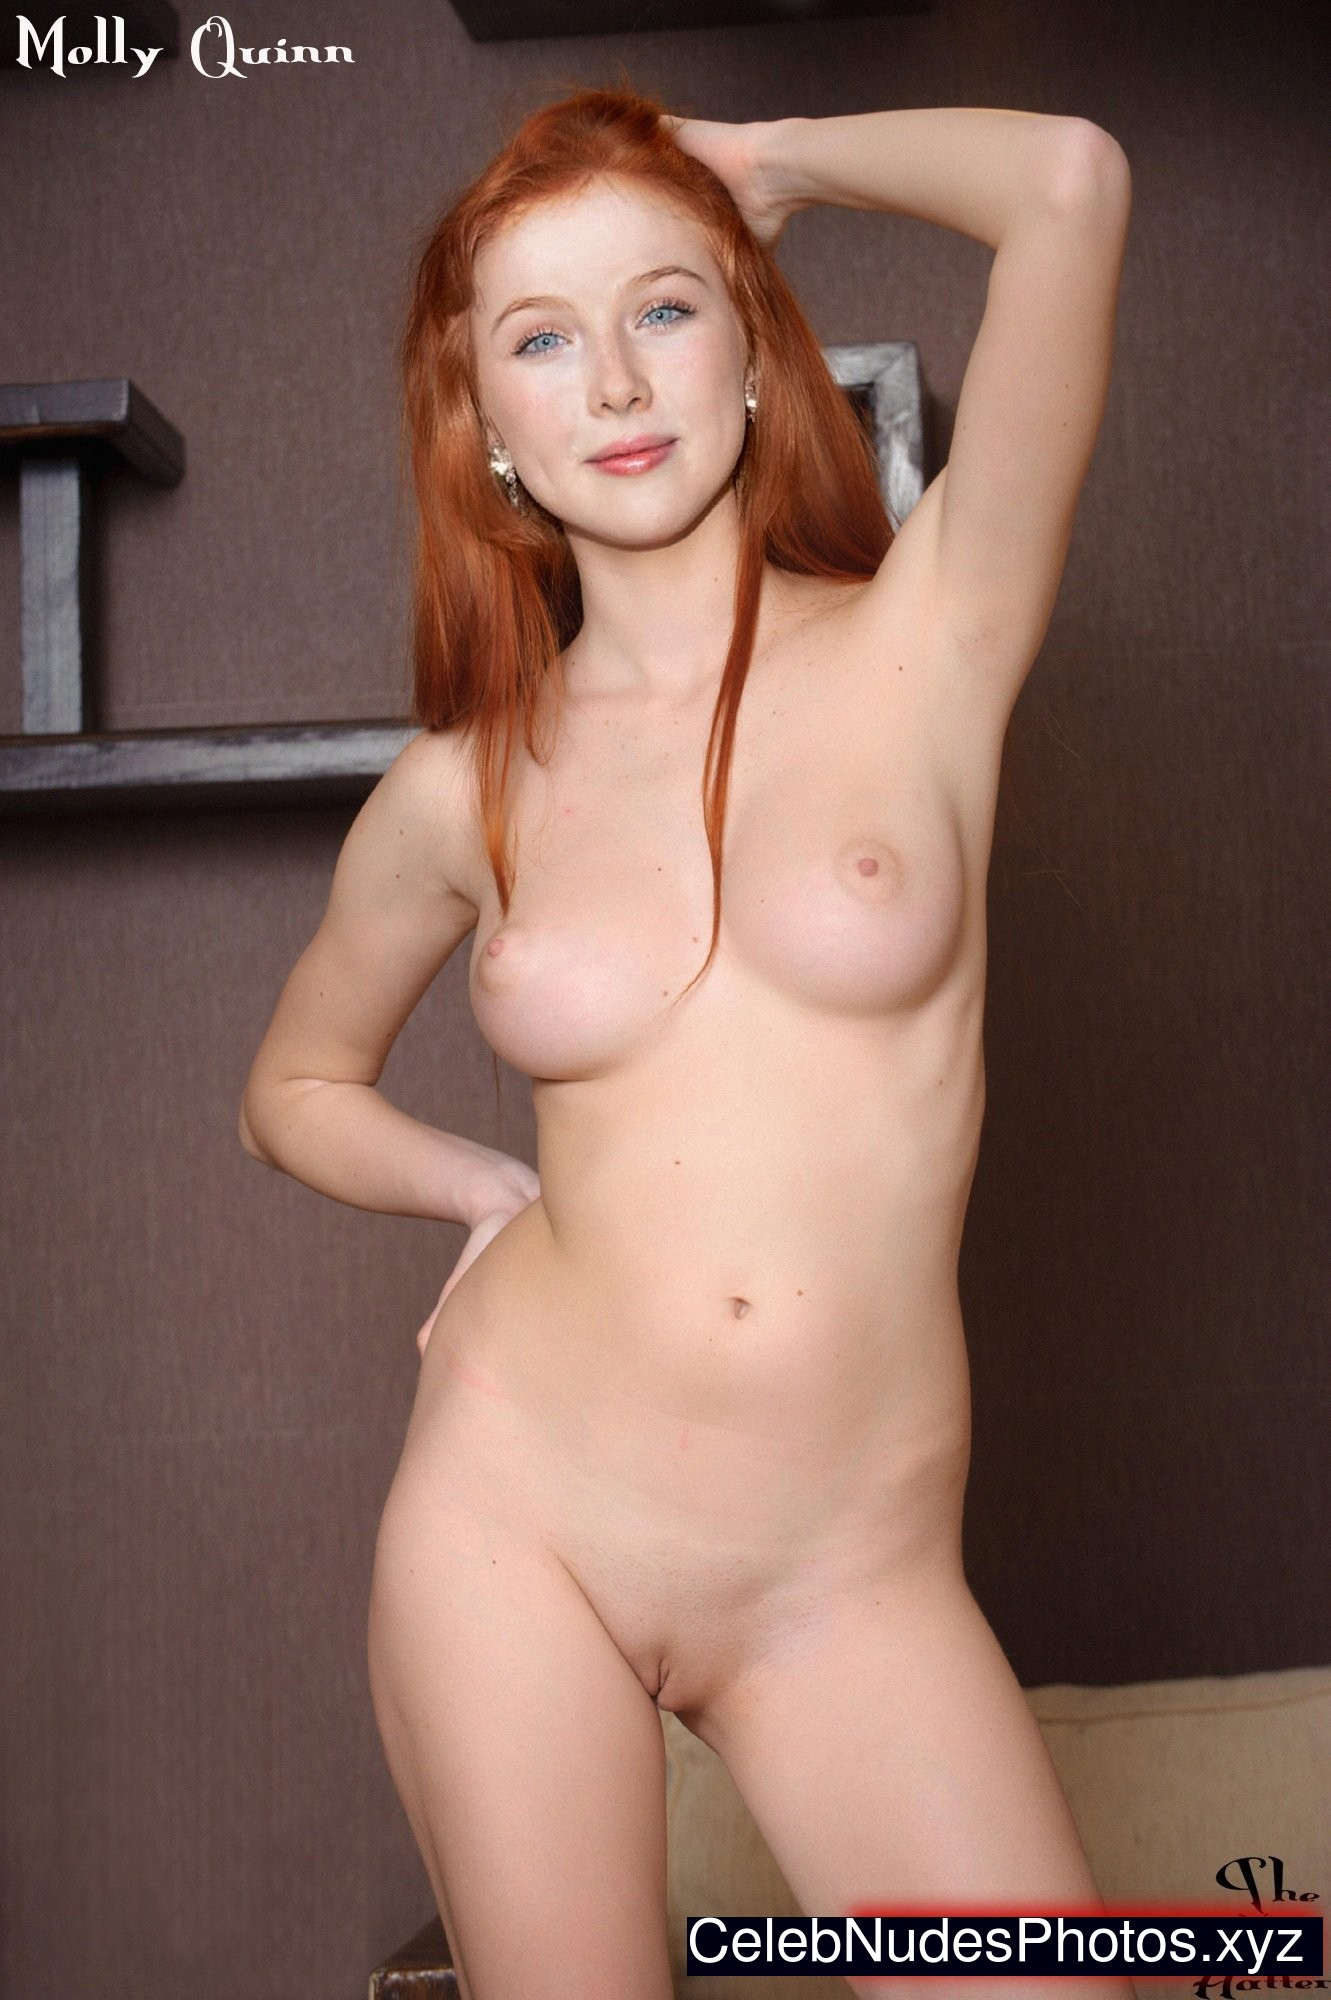 Molly quinn nude com opinion